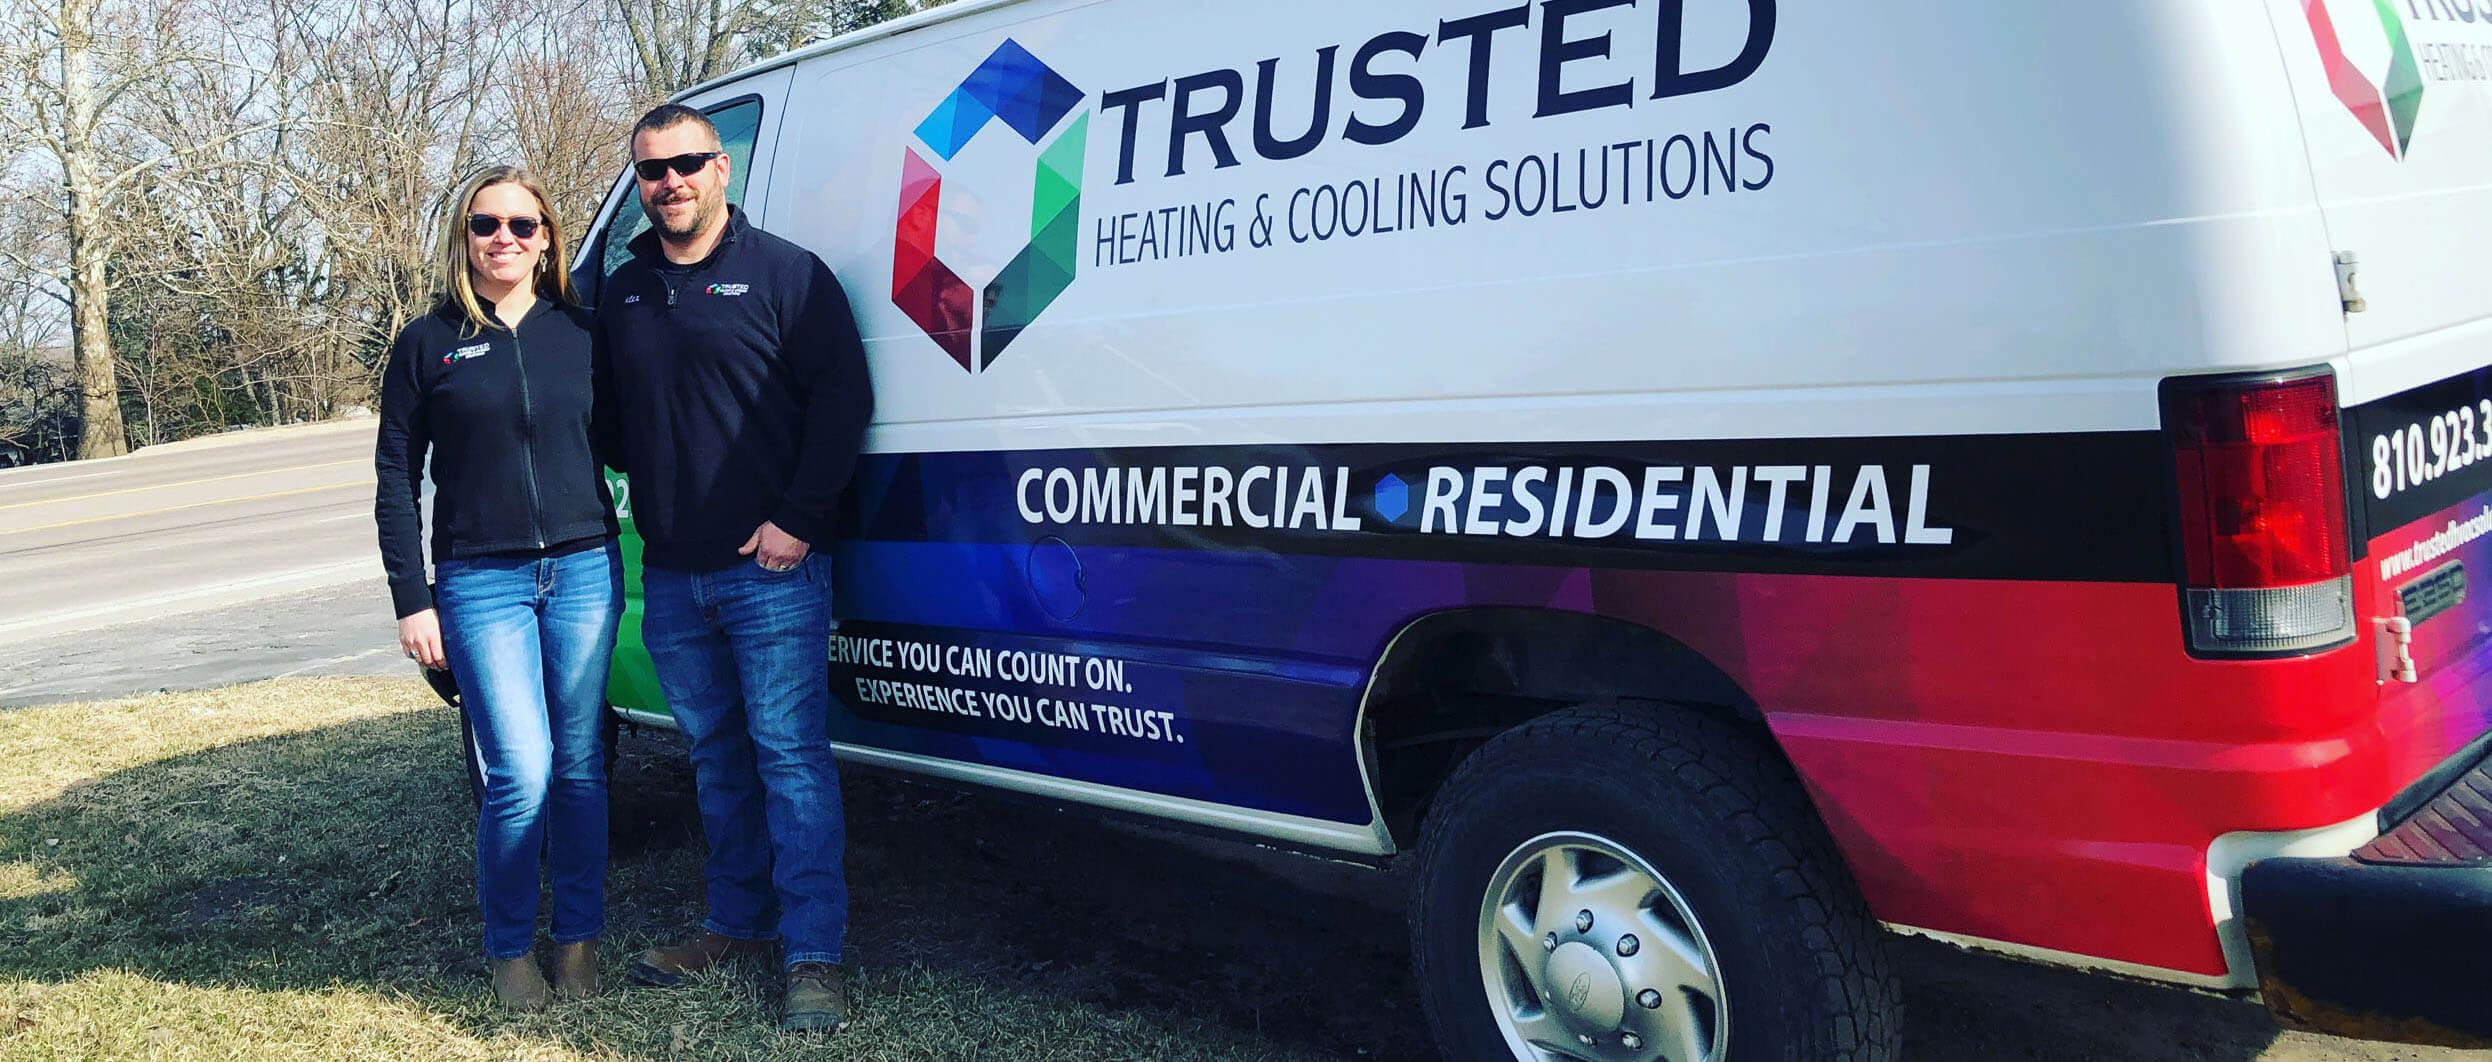 Mr Furnace Heating And Cooling Troy Mi Hvac Experts